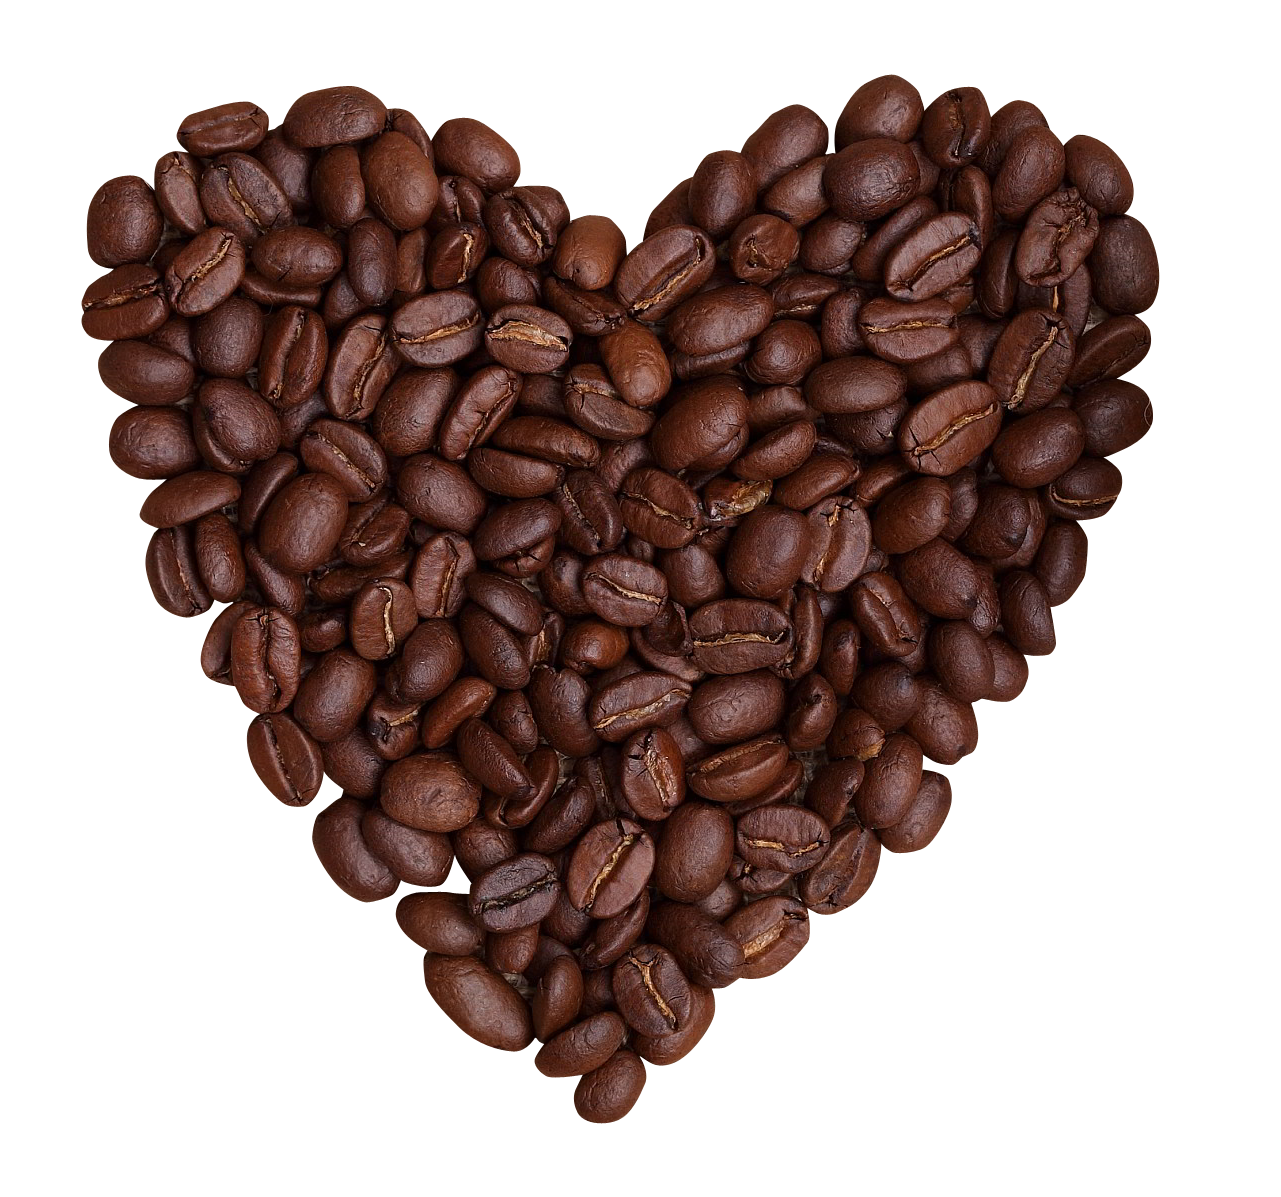 Coffee Beans Png Transparent Image - Coffee, Transparent background PNG HD thumbnail